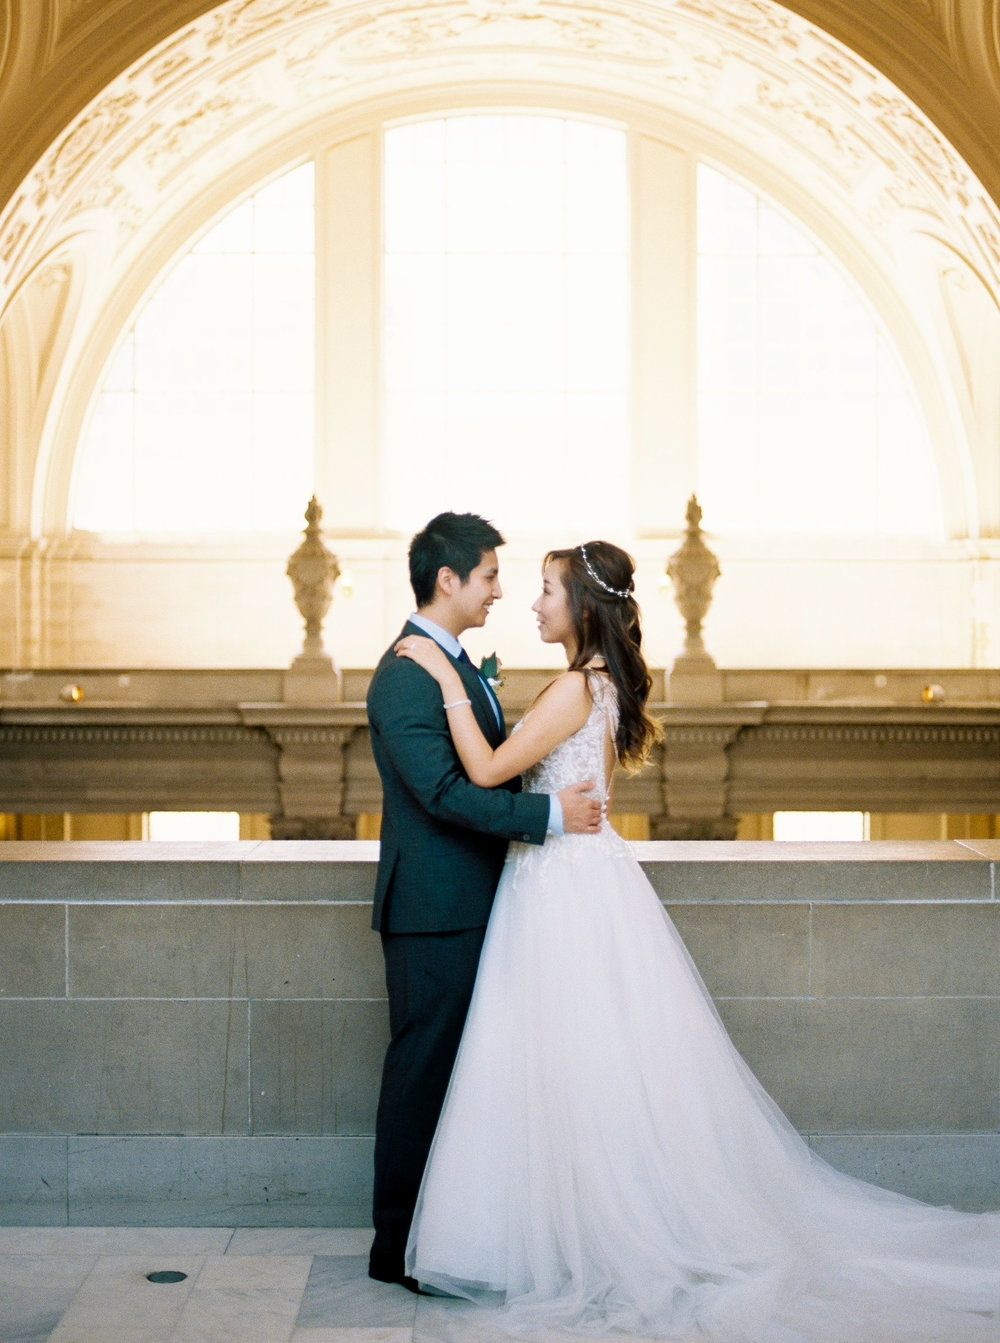 dennisroycoronel_san-francisco-city-hall_wedding-15.jpg